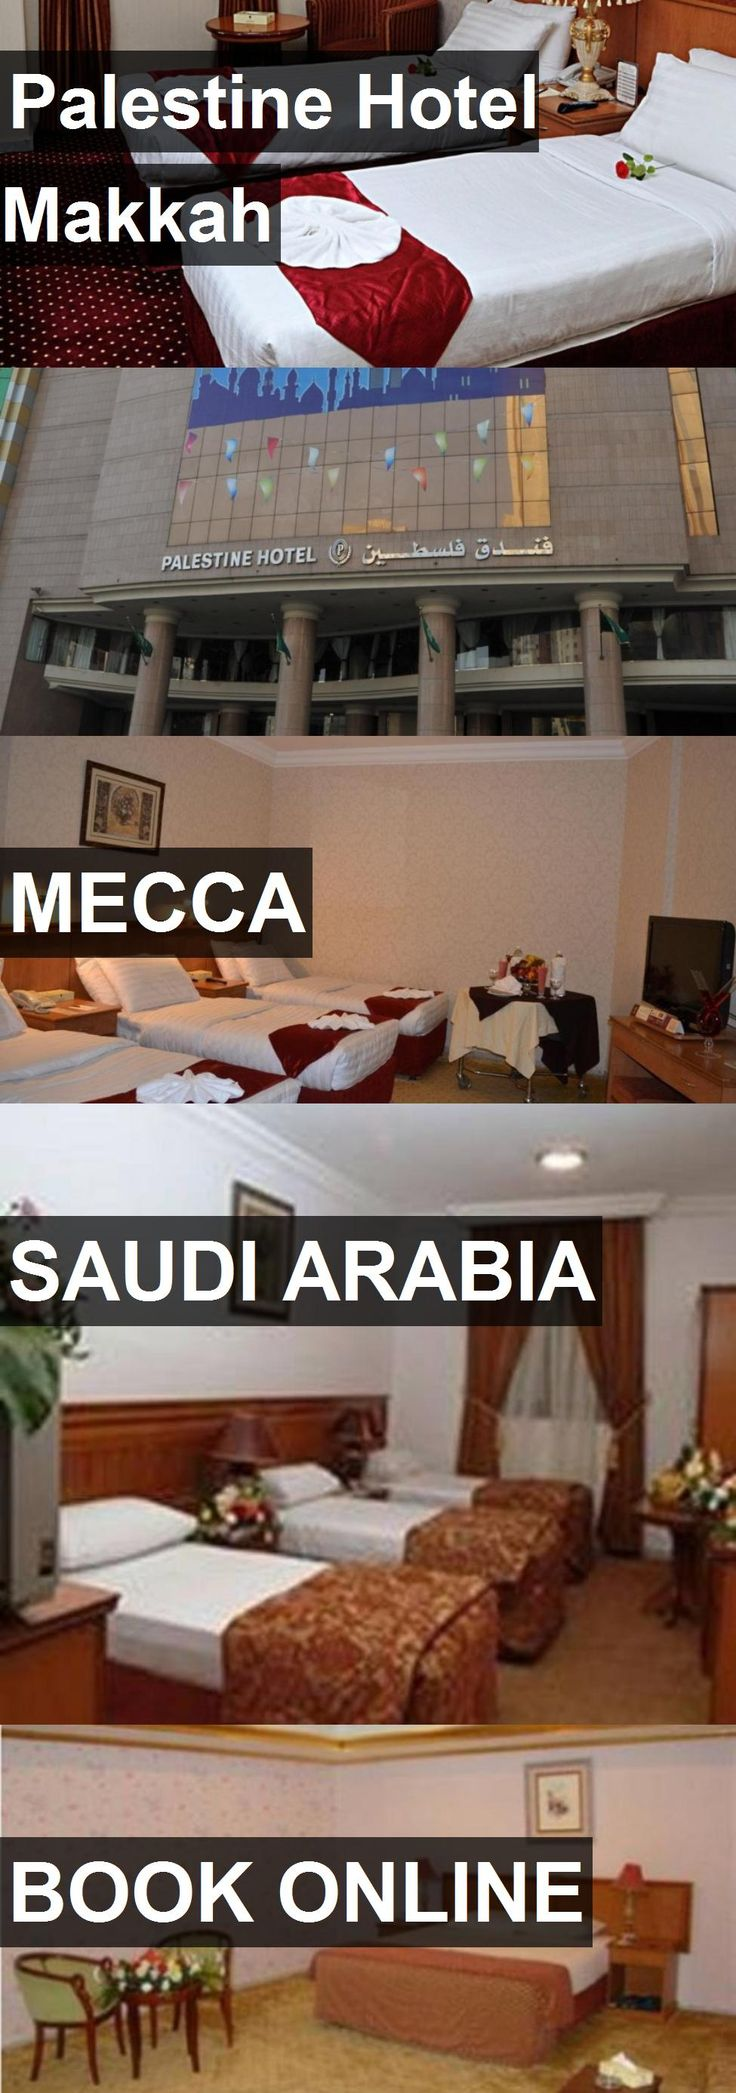 Palestine Hotel Makkah in Mecca, Saudi Arabia. For more information, photos, reviews and best prices please follow the link. #SaudiArabia #Mecca #travel #vacation #hotel